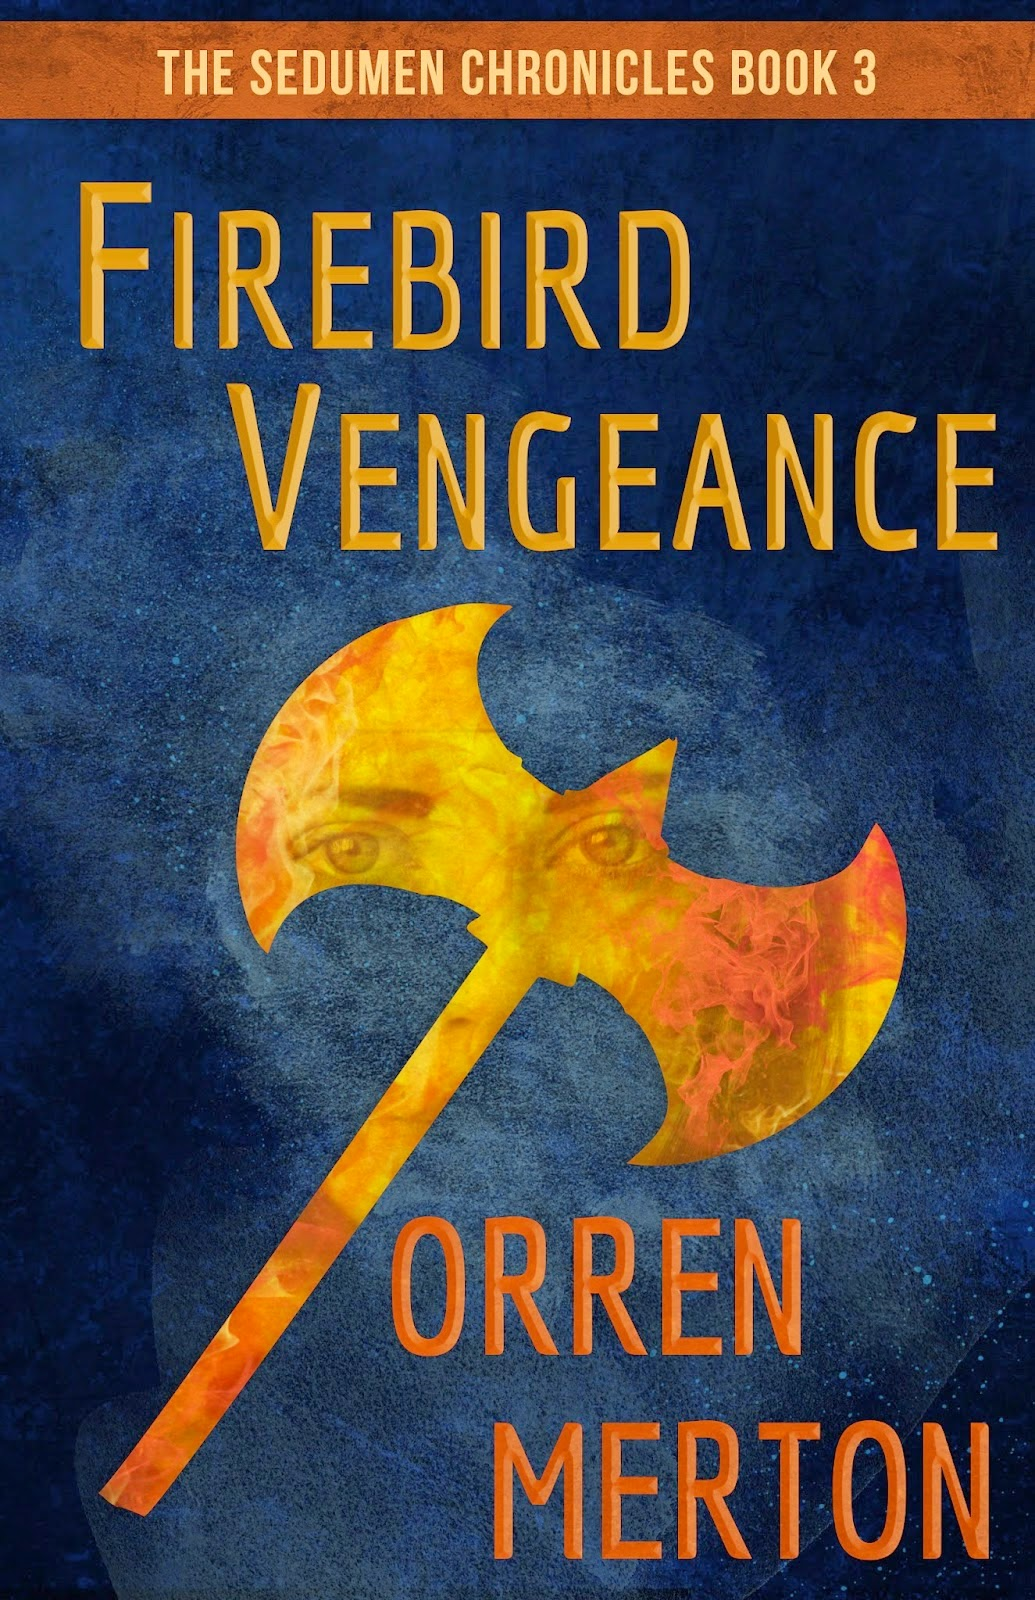 https://www.goodreads.com/book/show/24584412-firebird-vengeance?ac=1